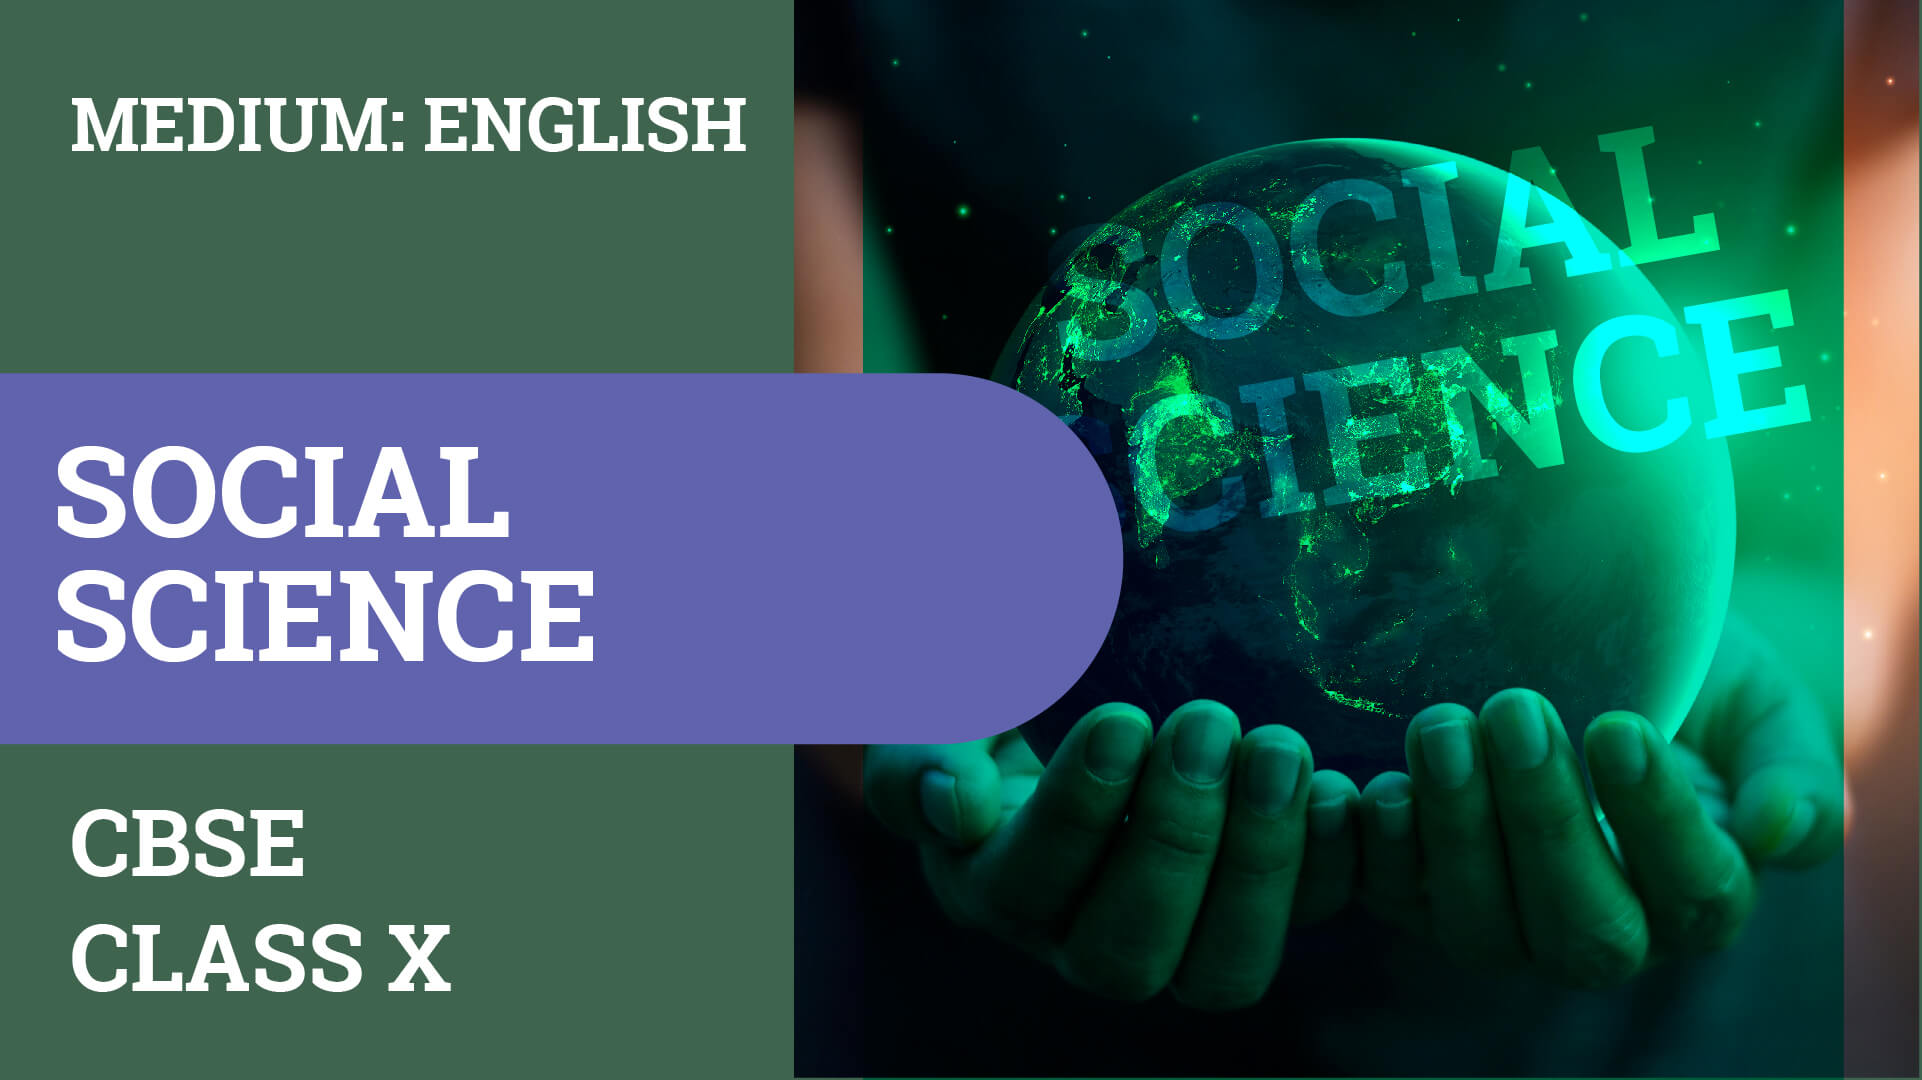 CBSE CLASS 10 SOCIAL SCIENCE (ENGLISH MEDIUM) VIDEO LECTURE